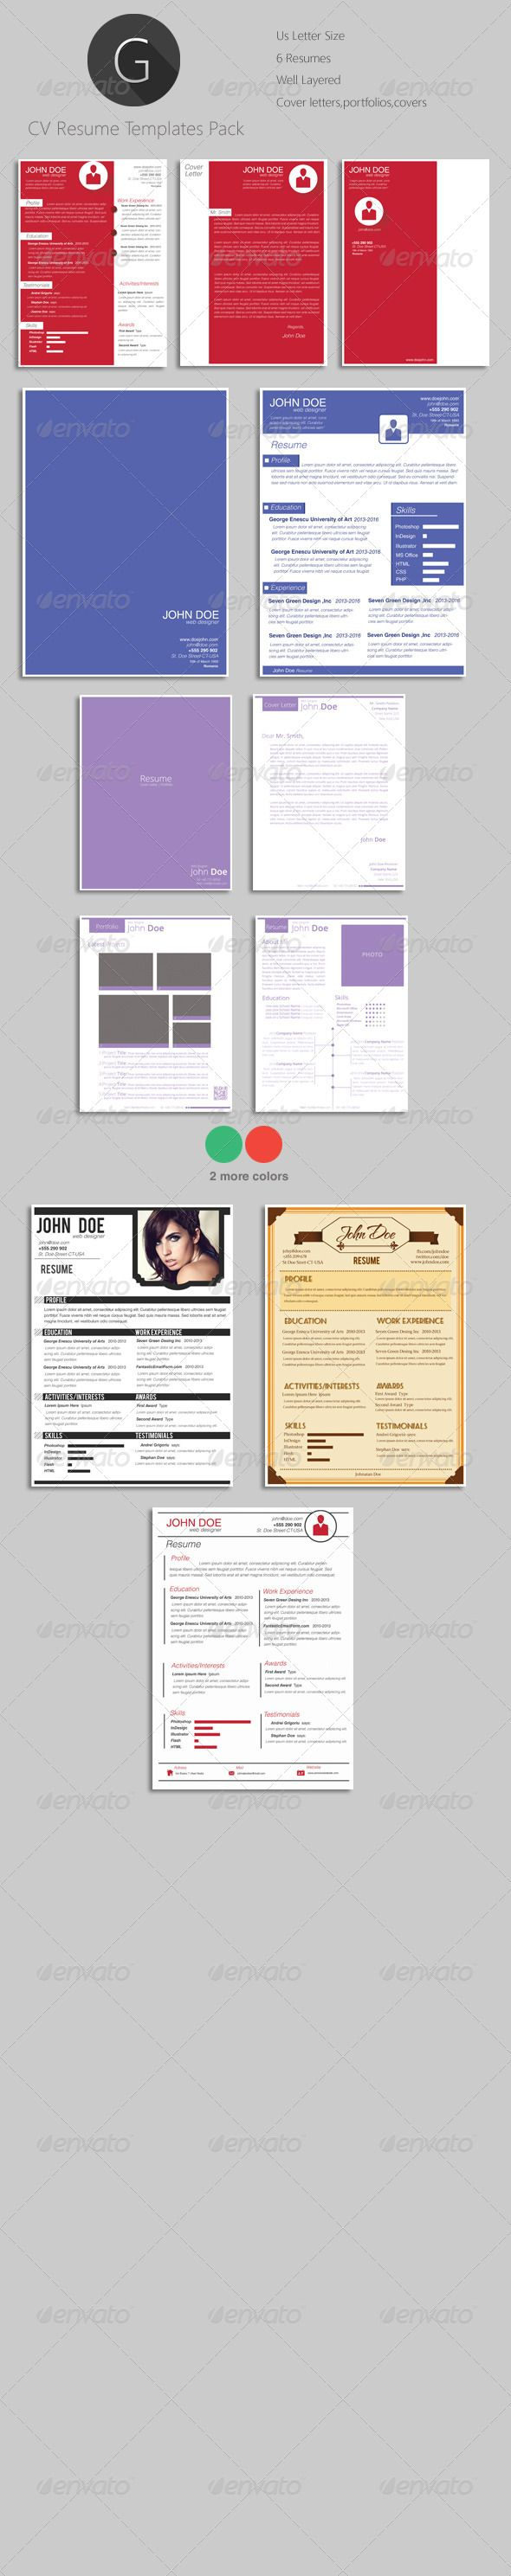 186 best Print Templates images on Pinterest | Print templates ...